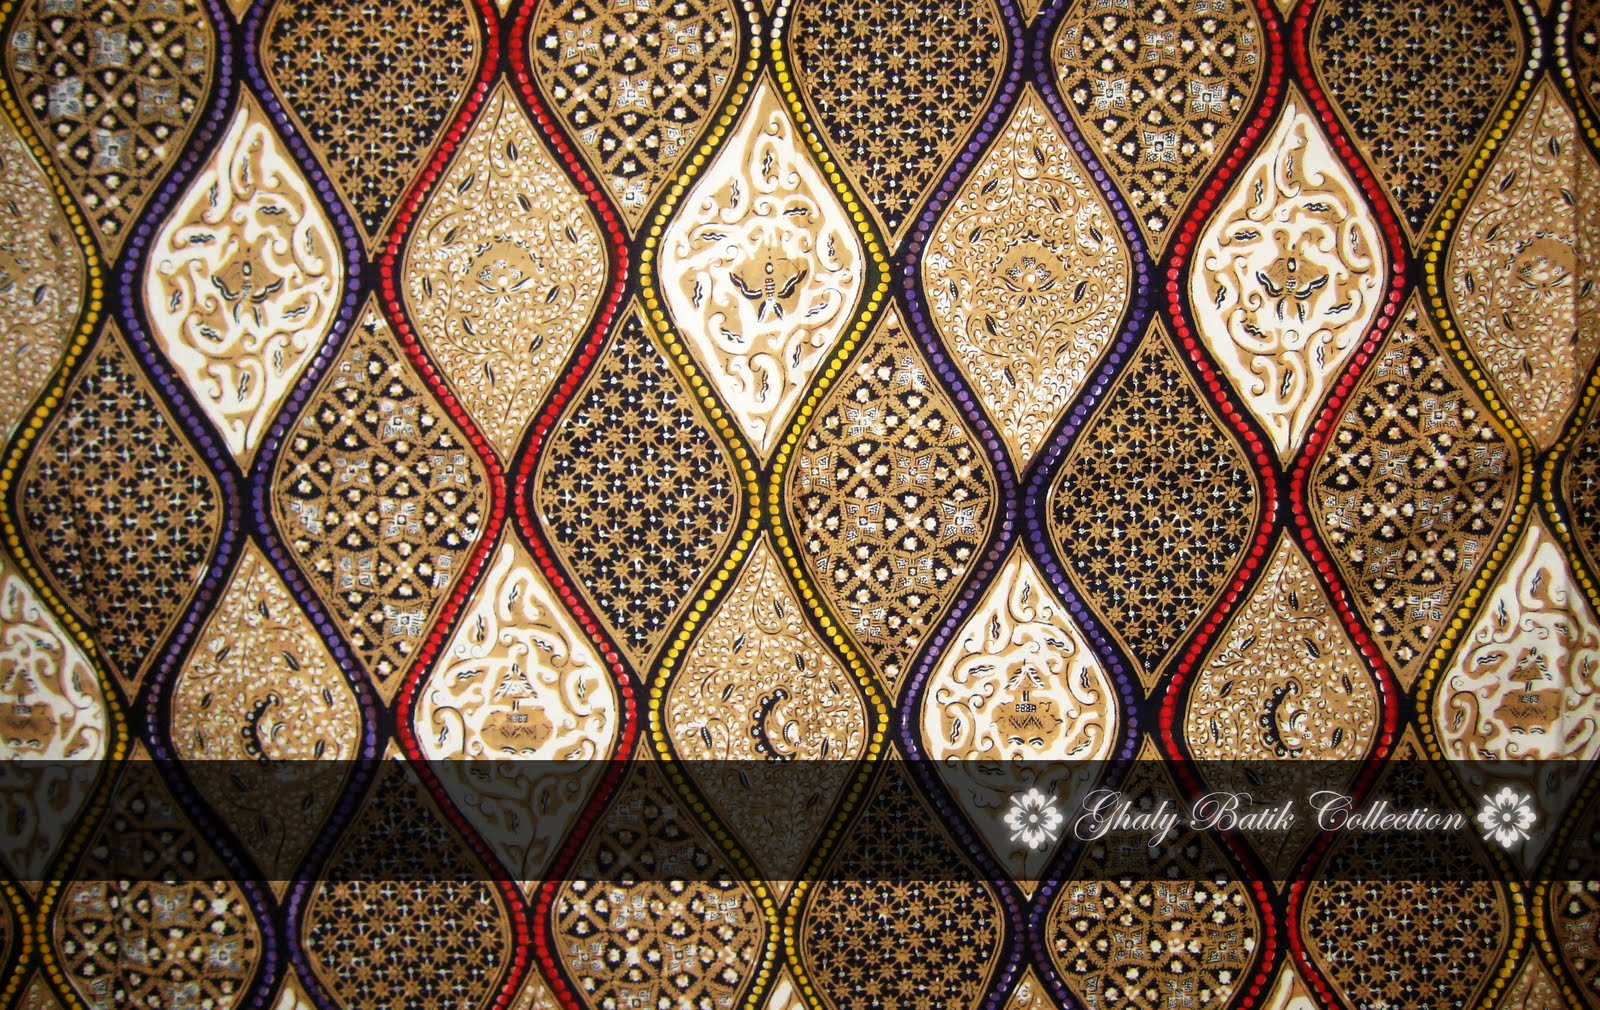 Ghaly Batik Collection's